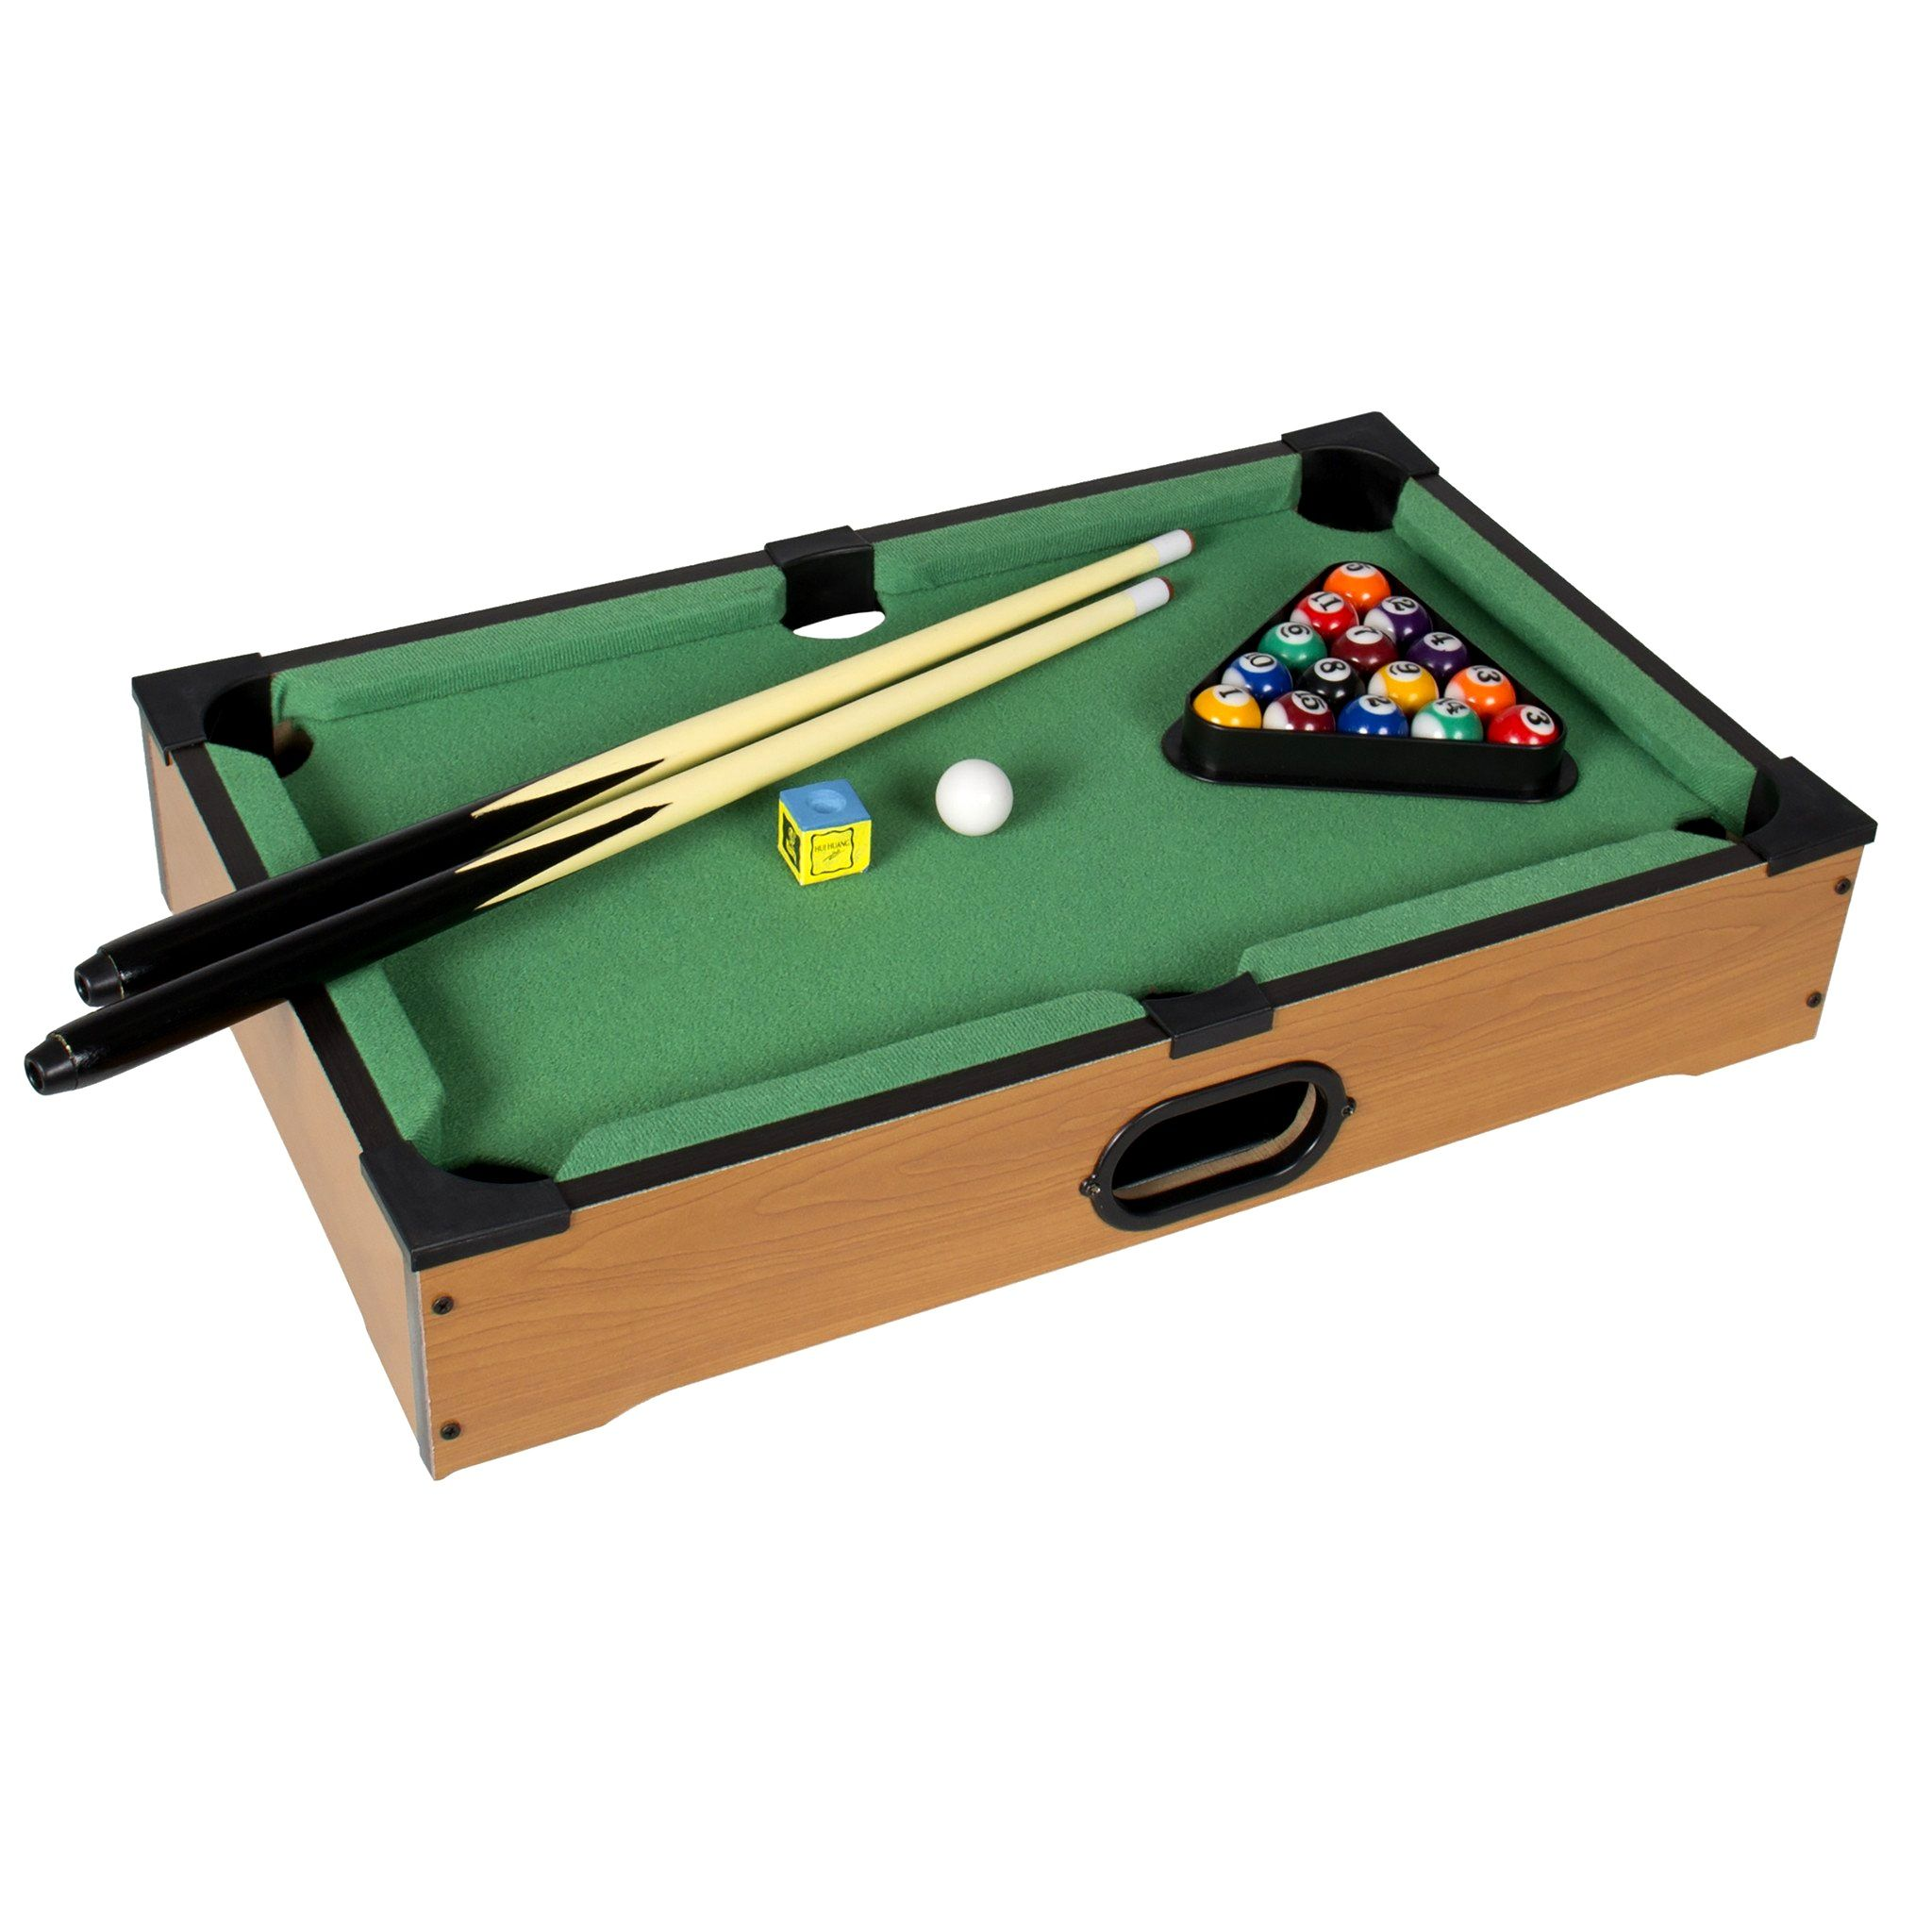 Elegant Accessories : Awesome Mini Pool Table Game Top Accessories Board Games For  Kids Online Fdafx Free